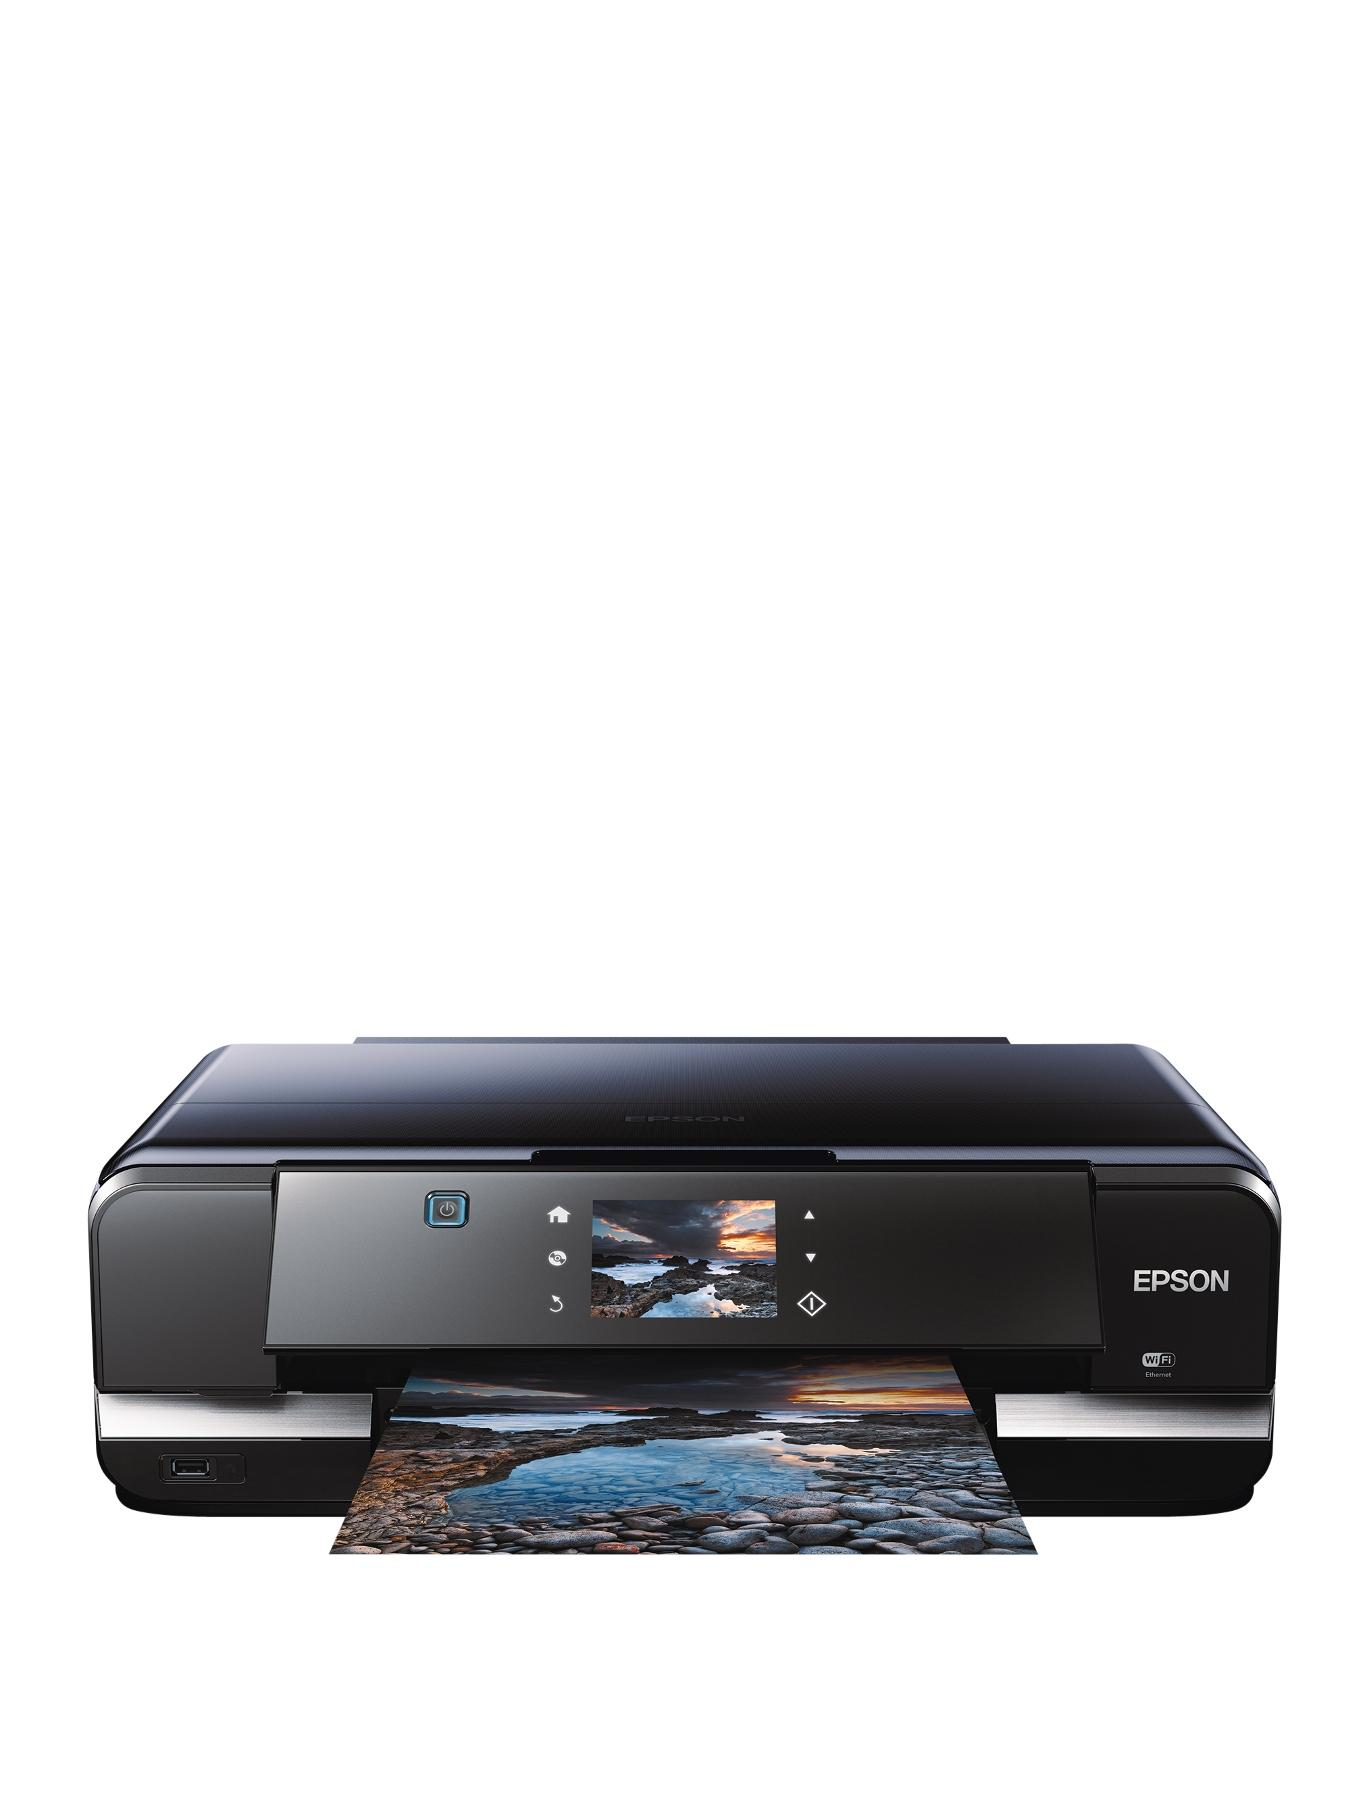 Epson XP-950 Expression Photo All-In-One A3 Printer